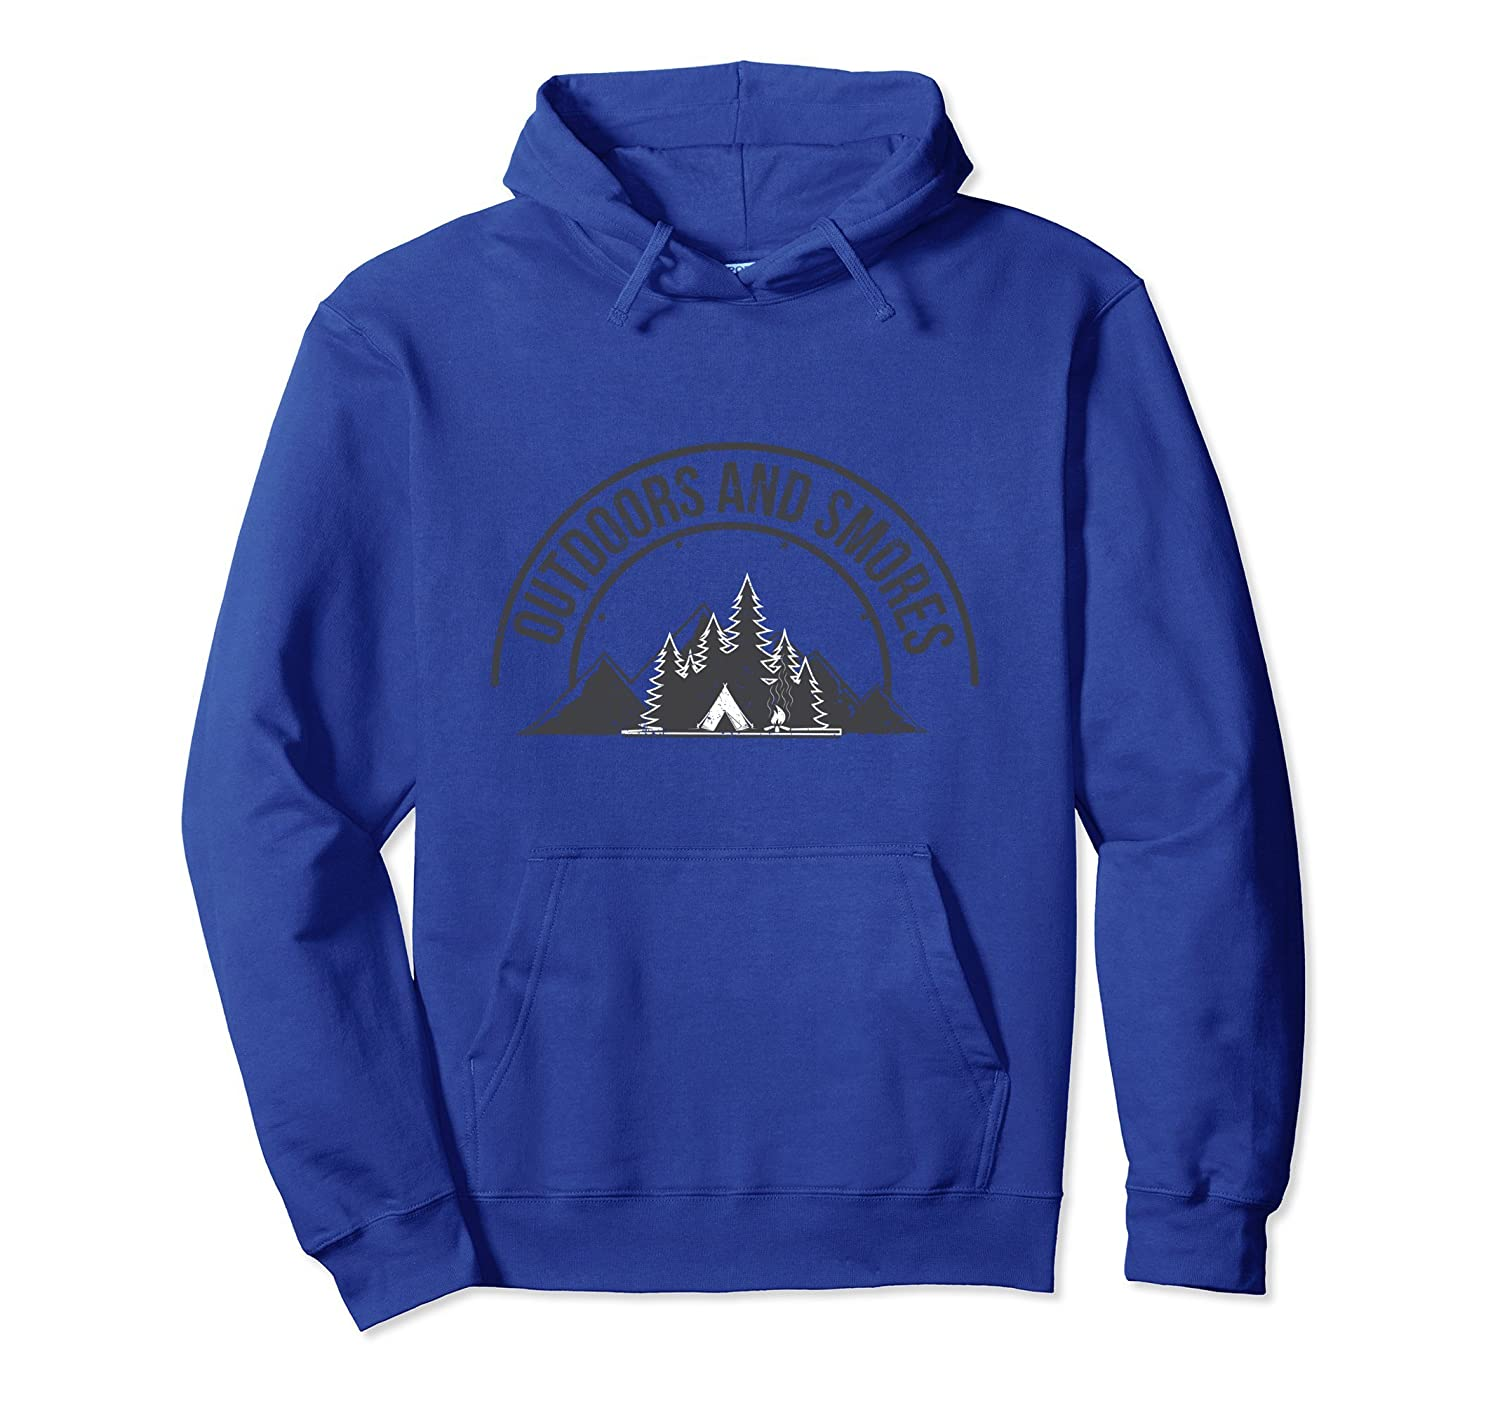 Outdoors and Smores Hoodie for Camper Hiker-mt